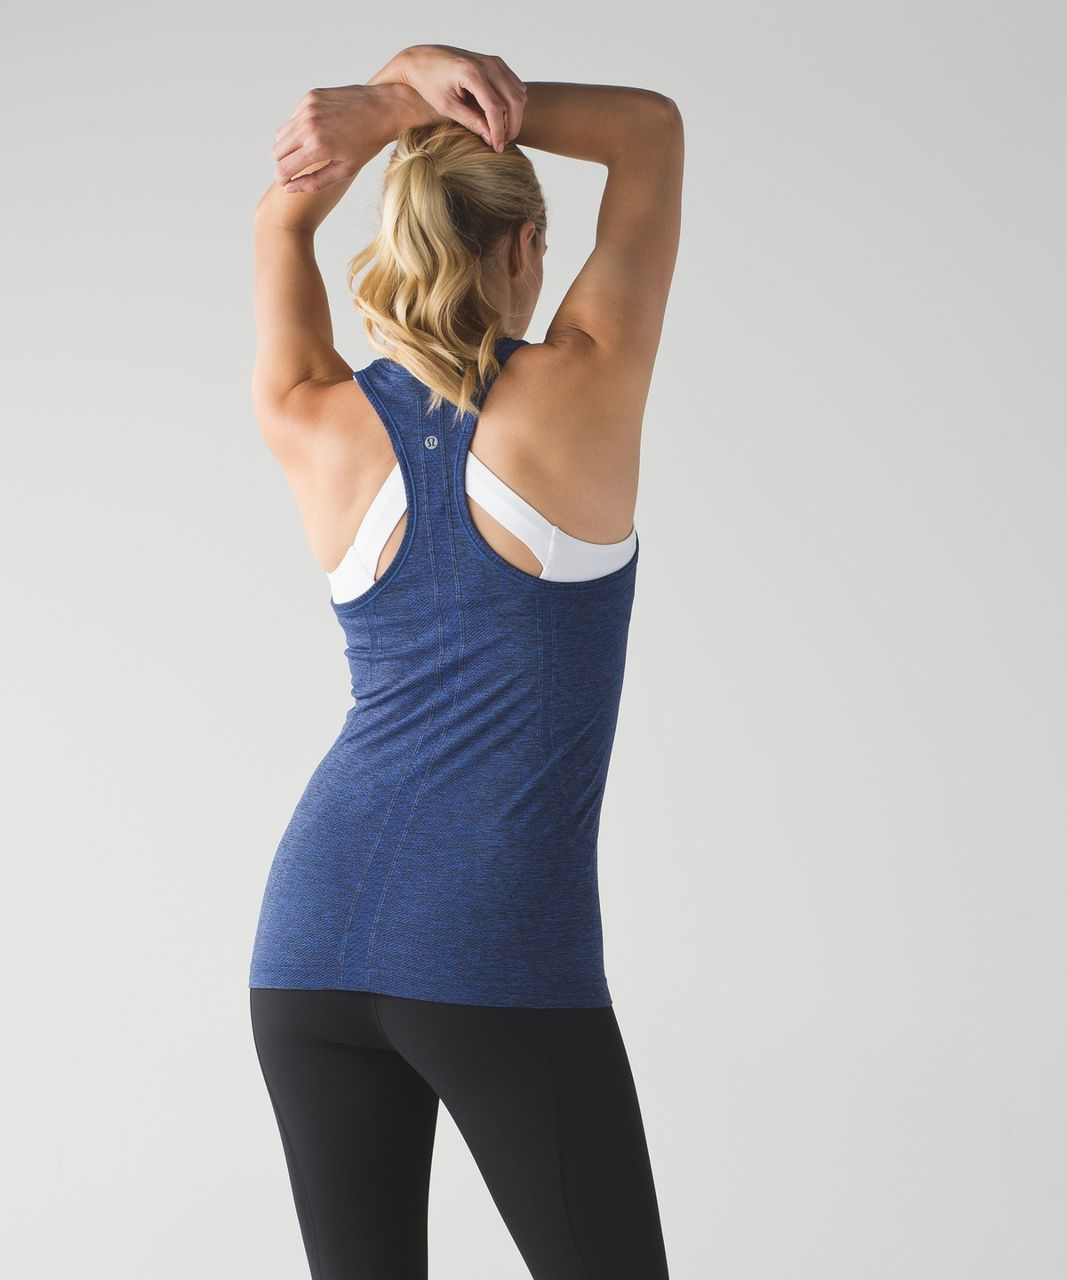 Lululemon Swiftly Tech Racerback - Black / Sapphire Blue